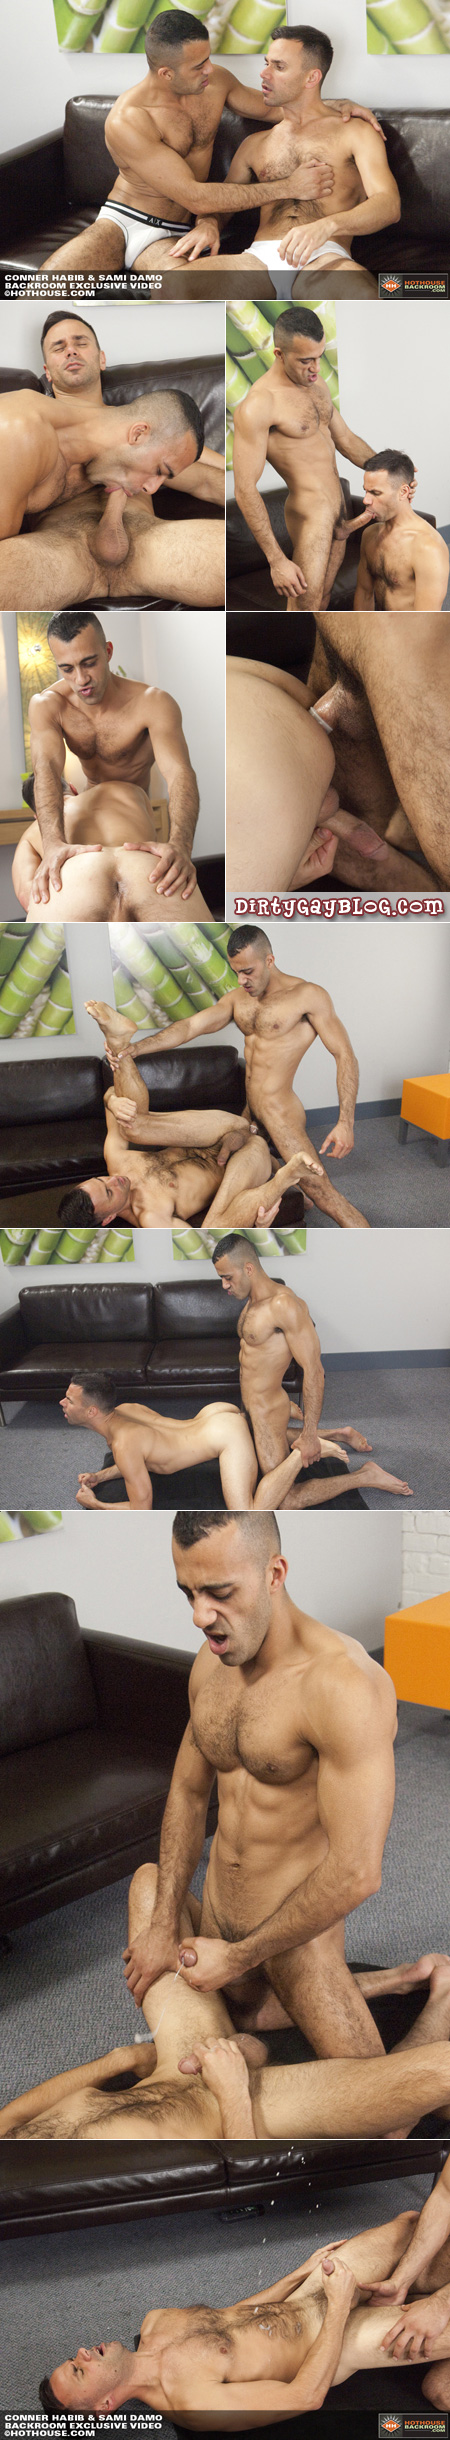 Hairy, exotic men make loud noisy gay sex on the floor and shoot huge fountains of cum.